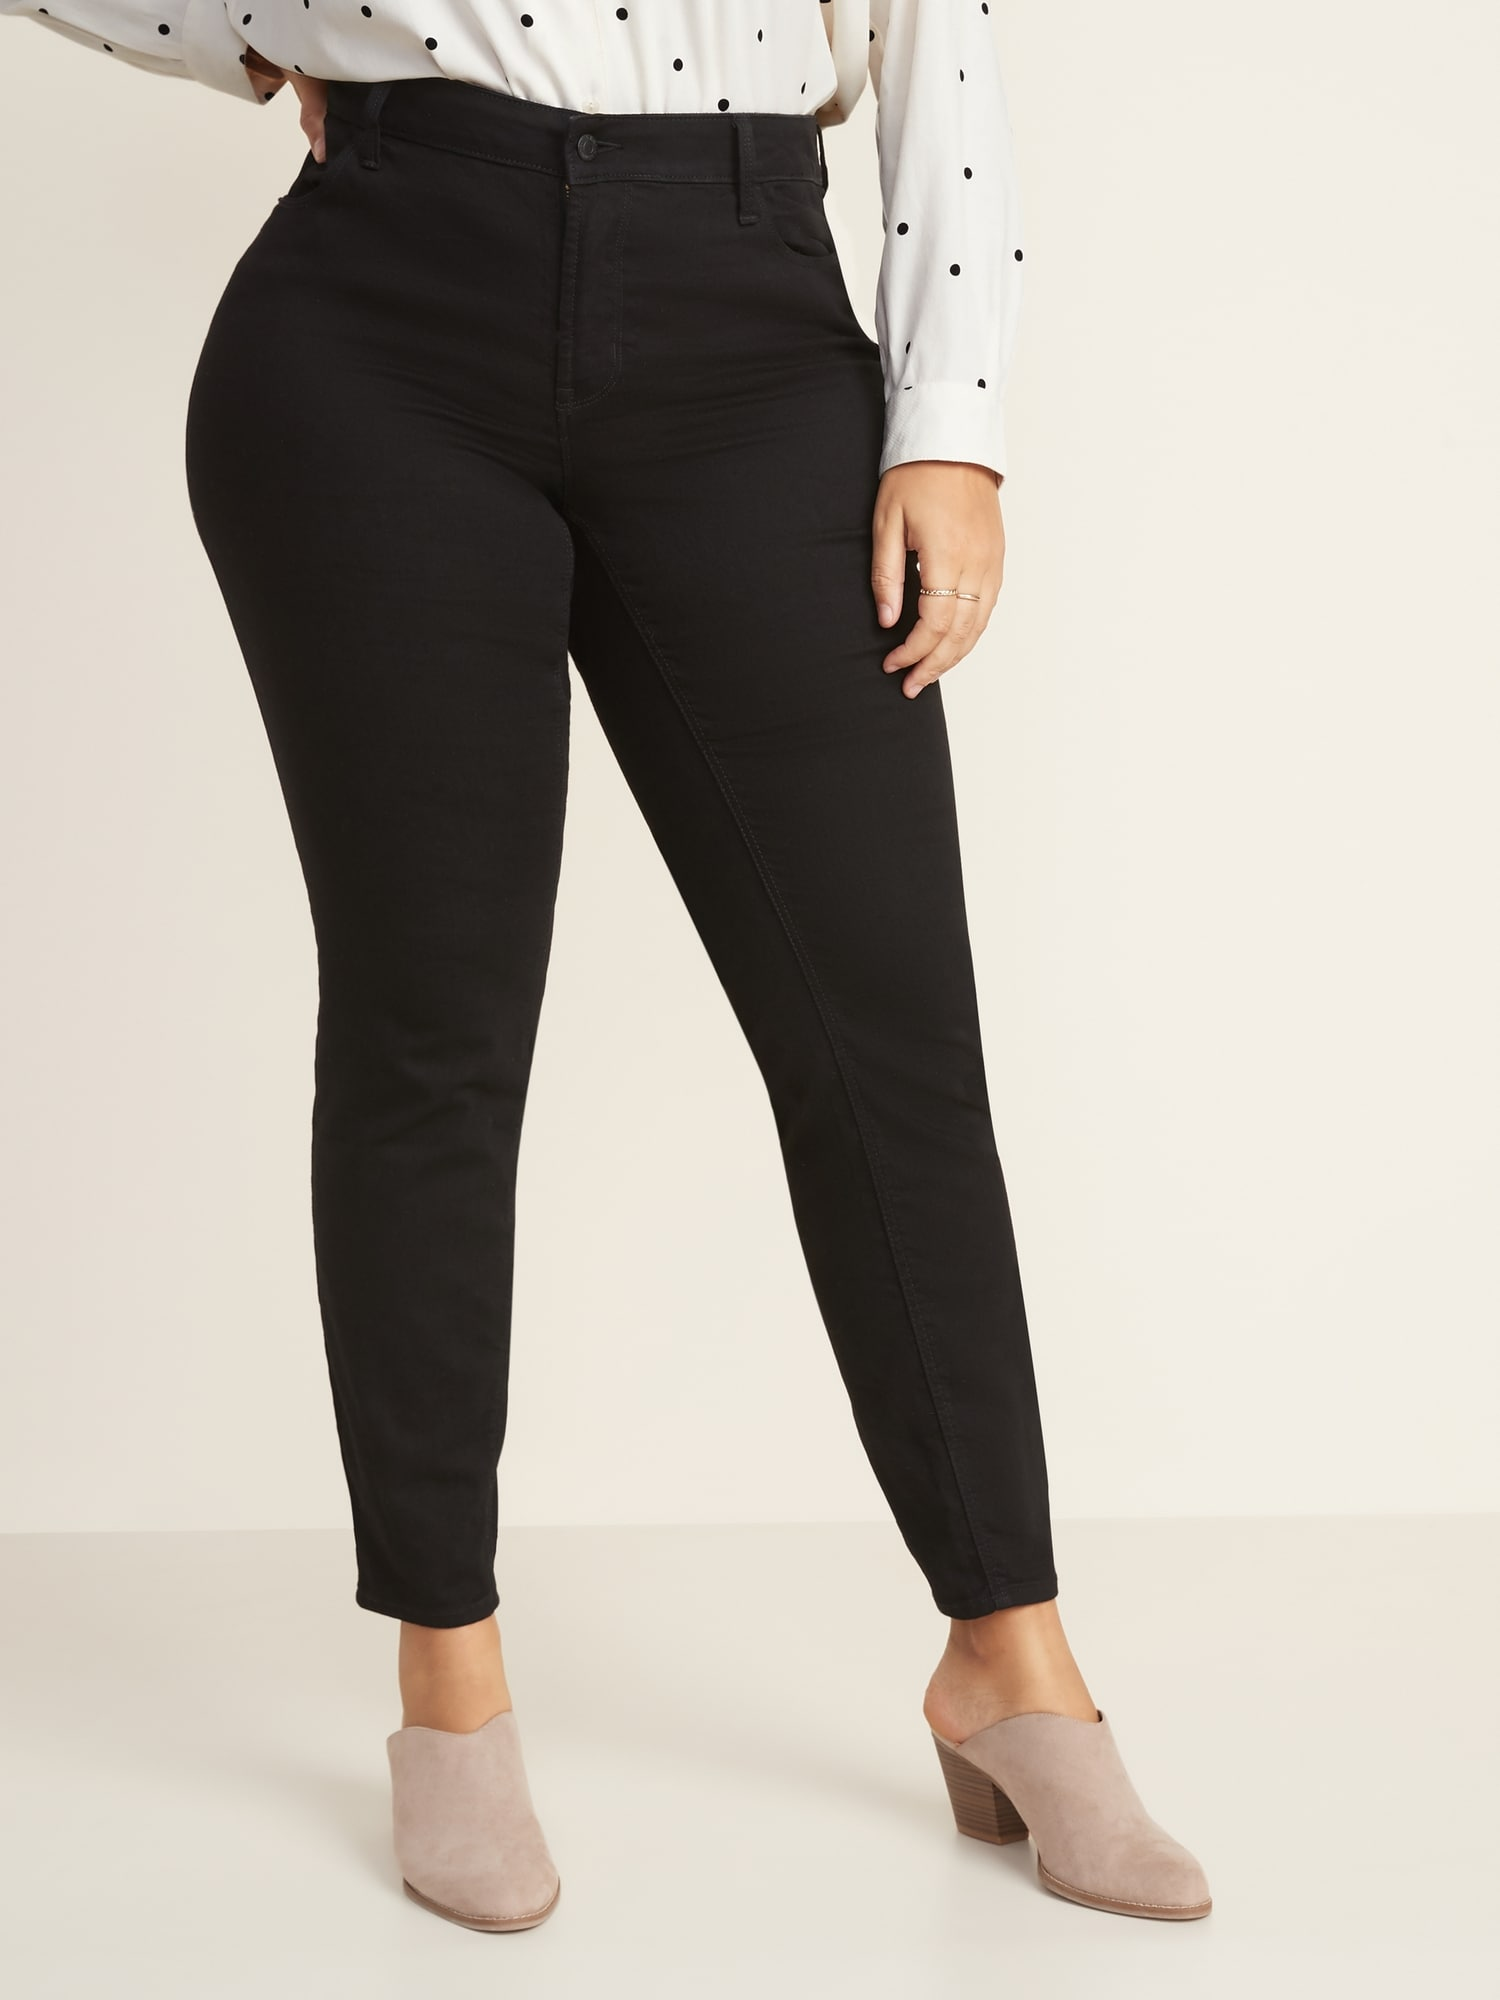 Mid Rise Super Skinny Plus Size Black Jeans by Old Navy